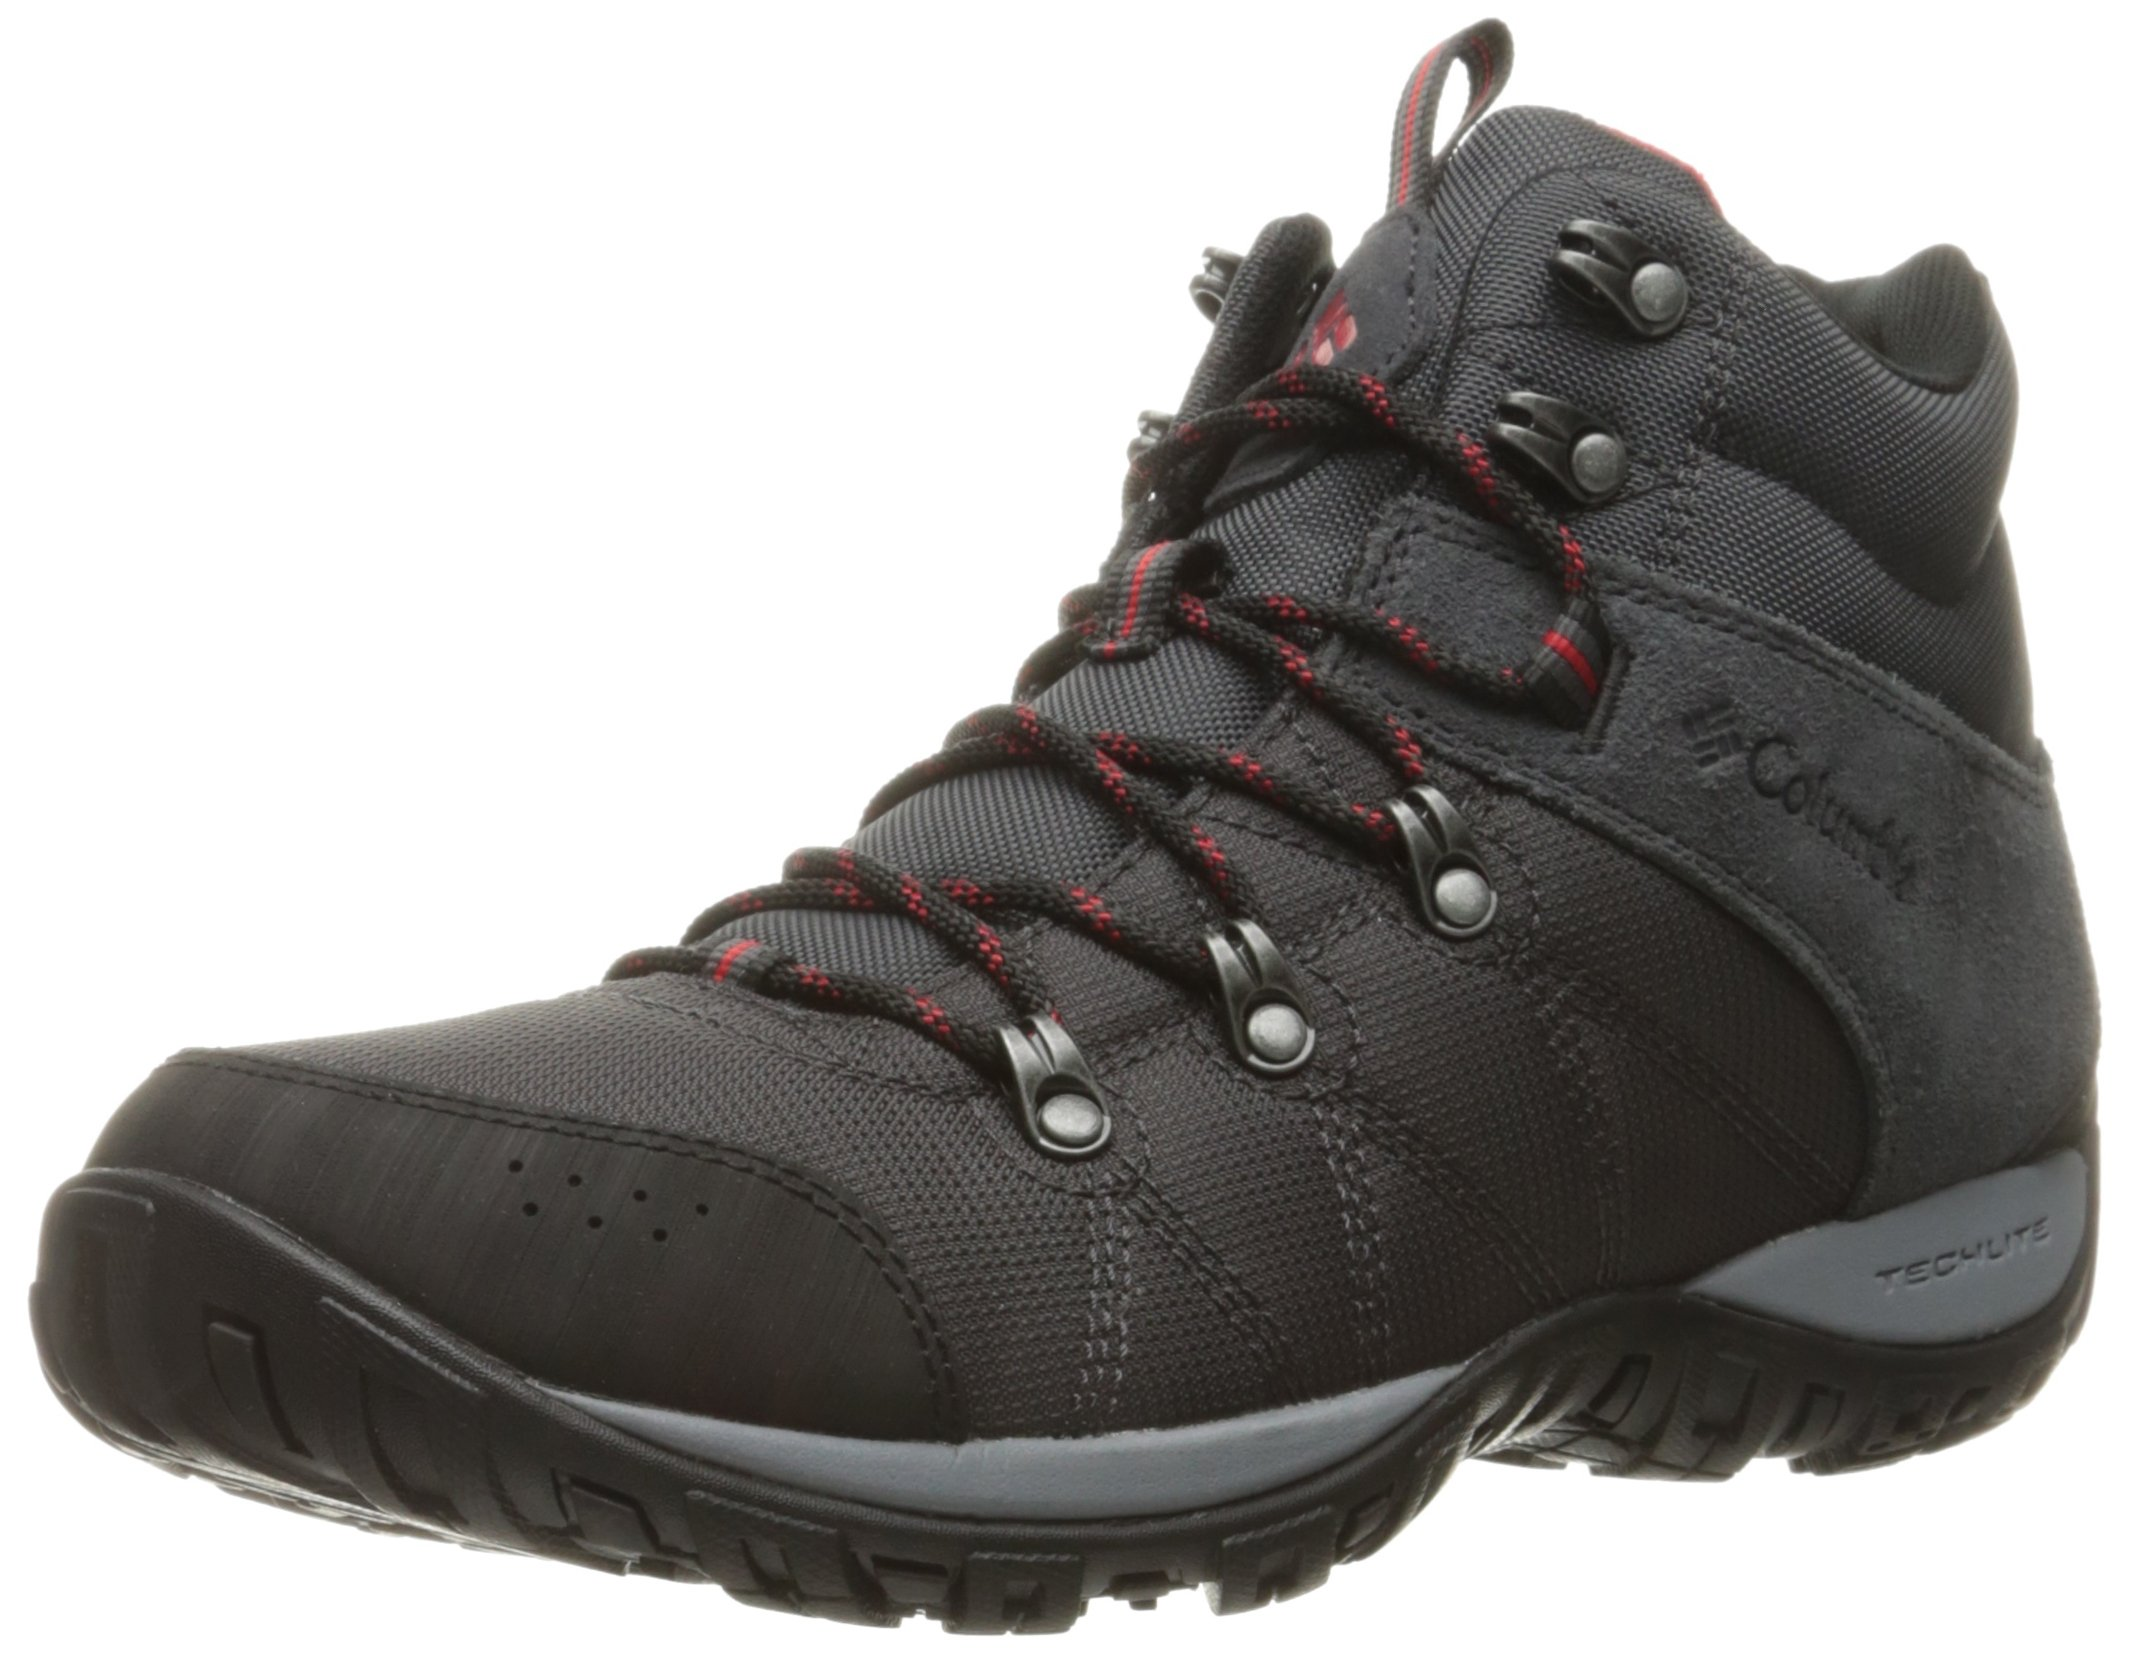 Columbia Men's Peakfreak Venture Mid LT Hiking Boot, Shark, Mountain Red, 8.5 Regular US by Columbia